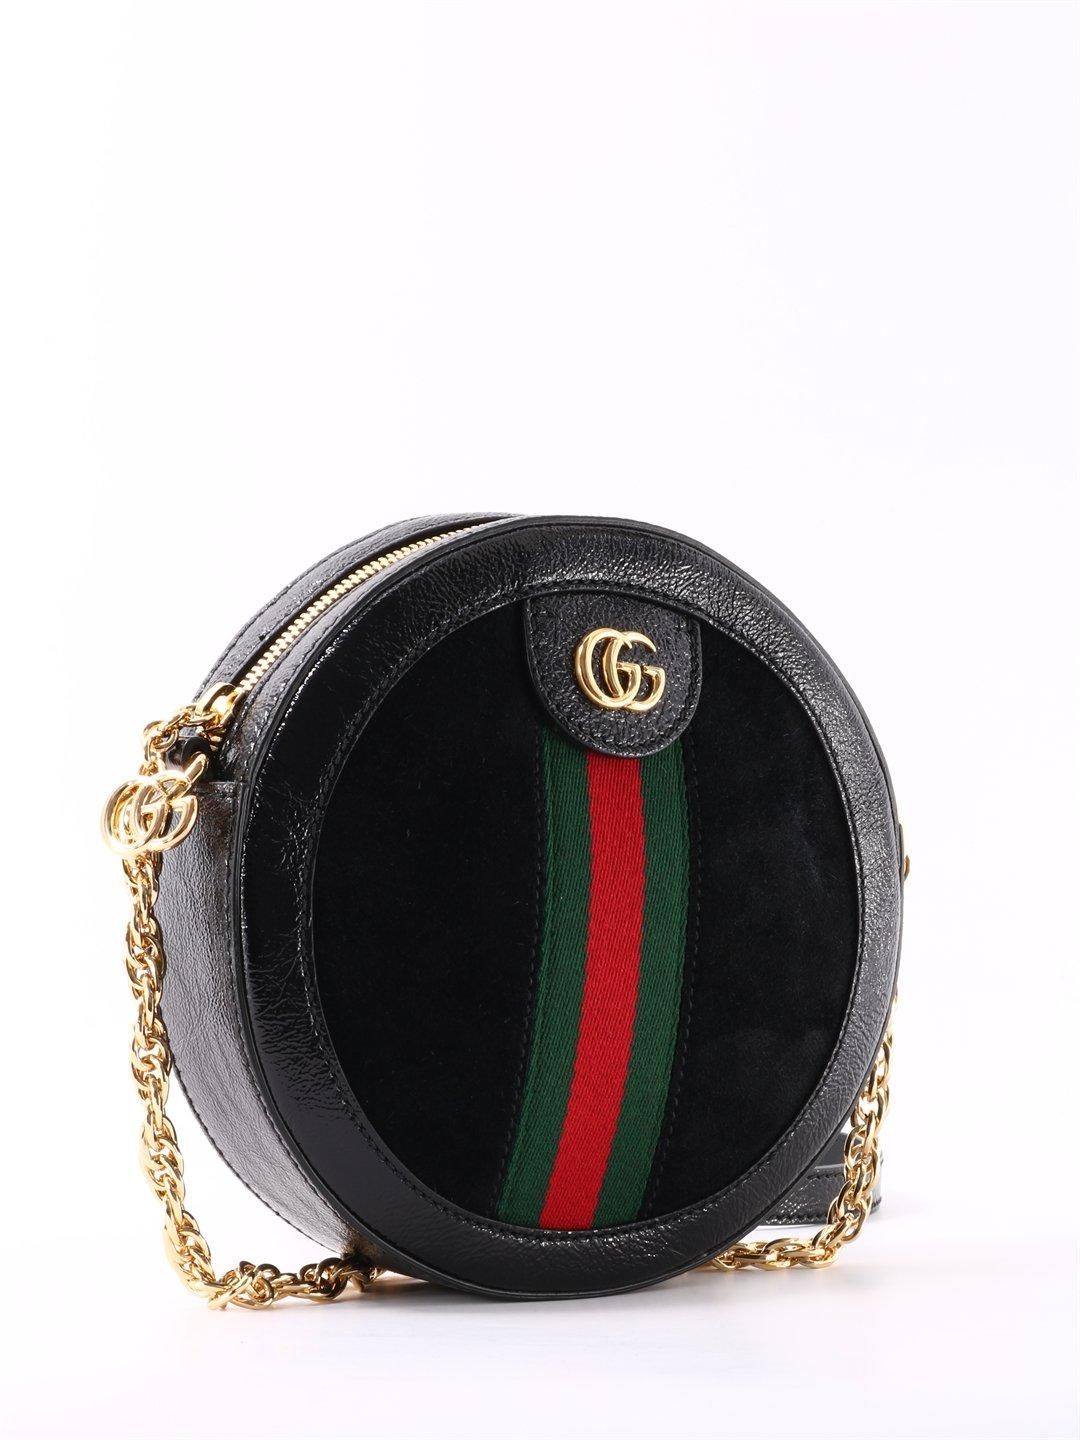 7776eb272d06 Gucci Ophidia Crossbody Bag in Black - Save 15% - Lyst